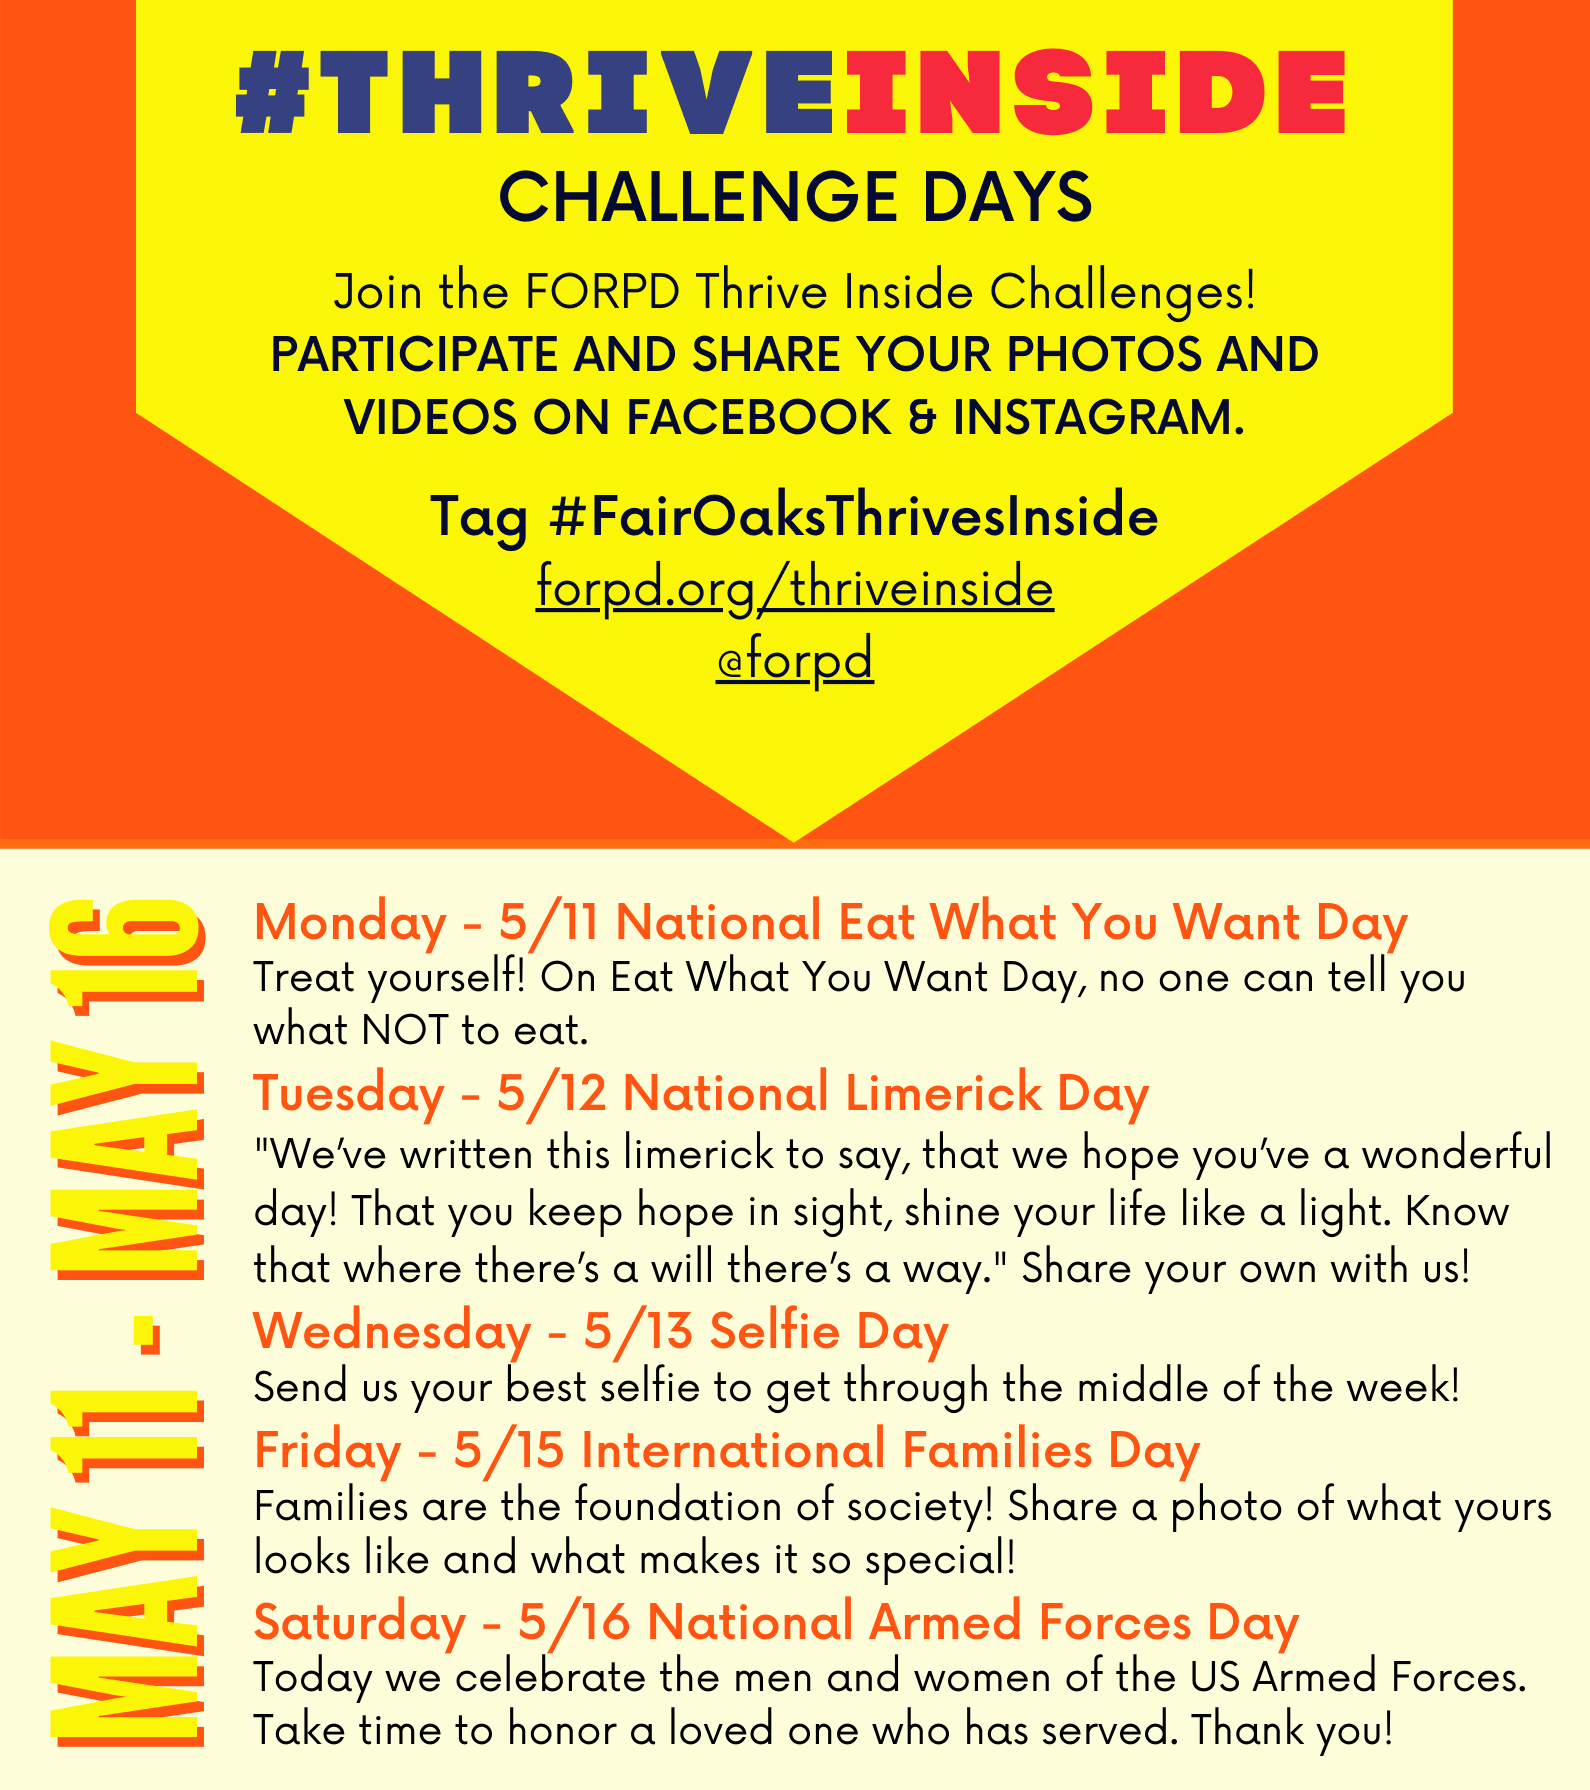 FairOaksThrivesInside Challenges May 11-16